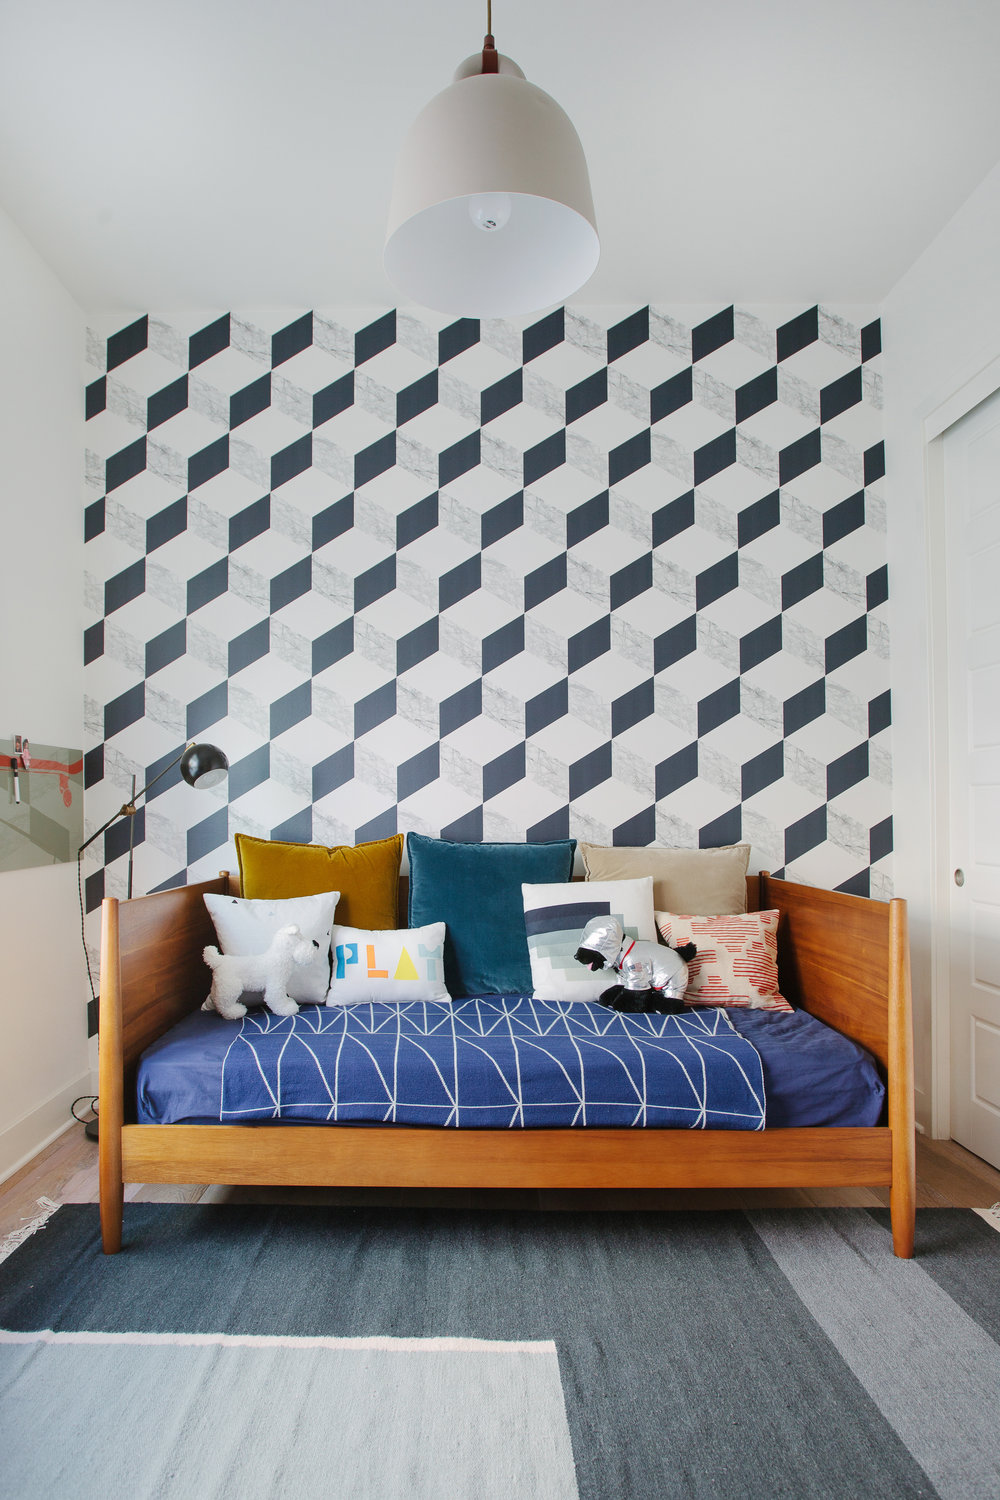 Milton and King Marble Block  wallpaper in Playa Vista playroom